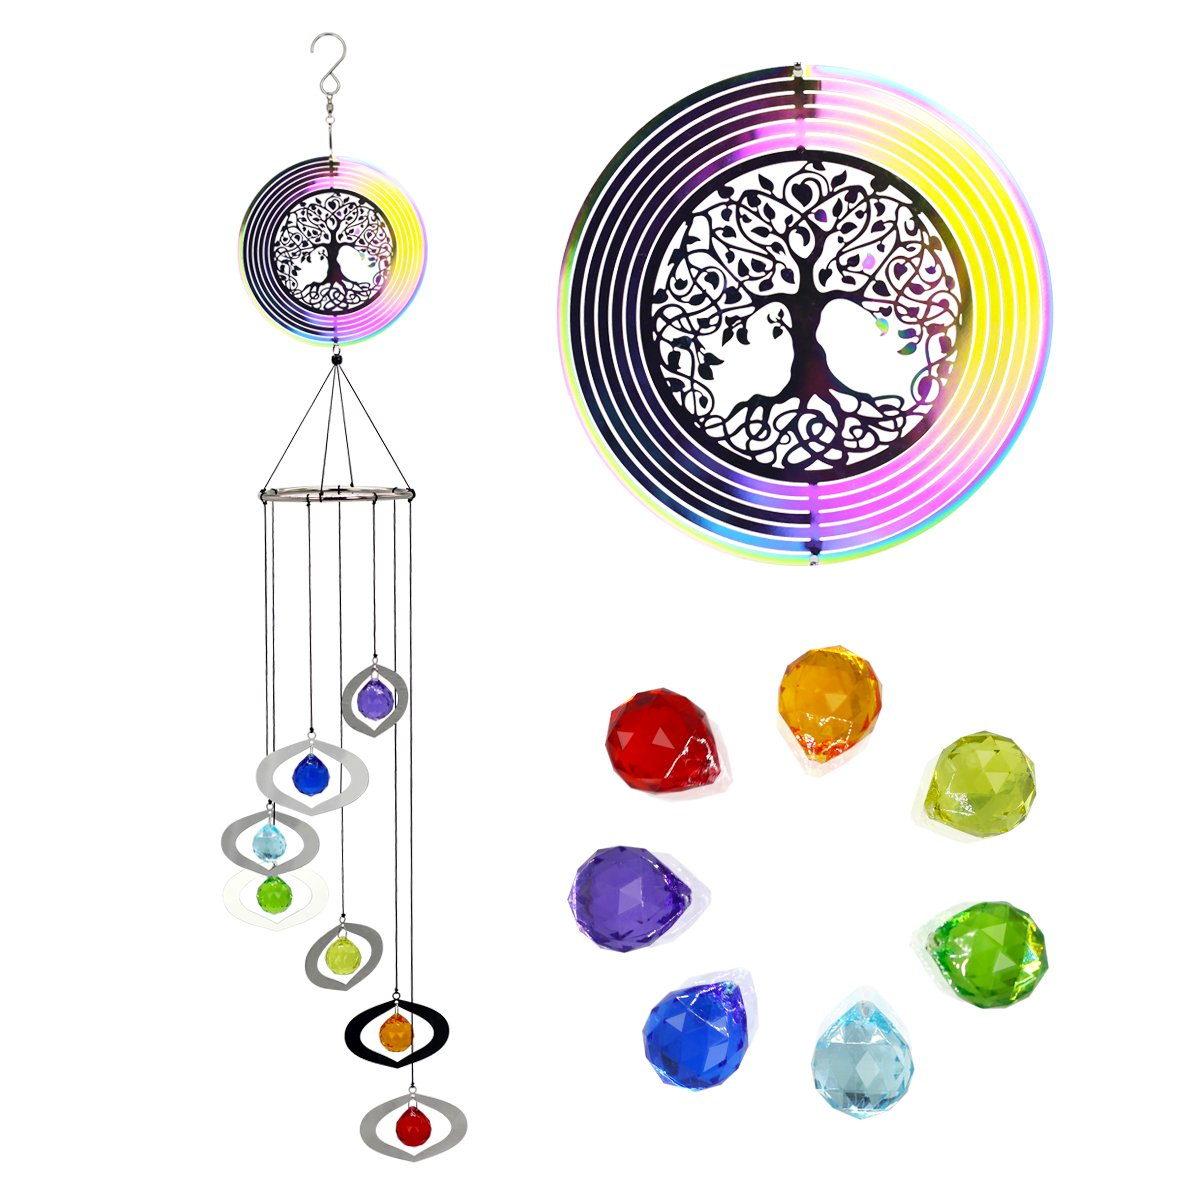 Astarin Wind Spinners Outdoor Hanging,3D Kinetic Metal Lifetree Wind spinners Wind Chimes with 7 Colorful Pendants, Great Decoration of Home, Garden, Patio and Yard, Perfect Housewarming Gift